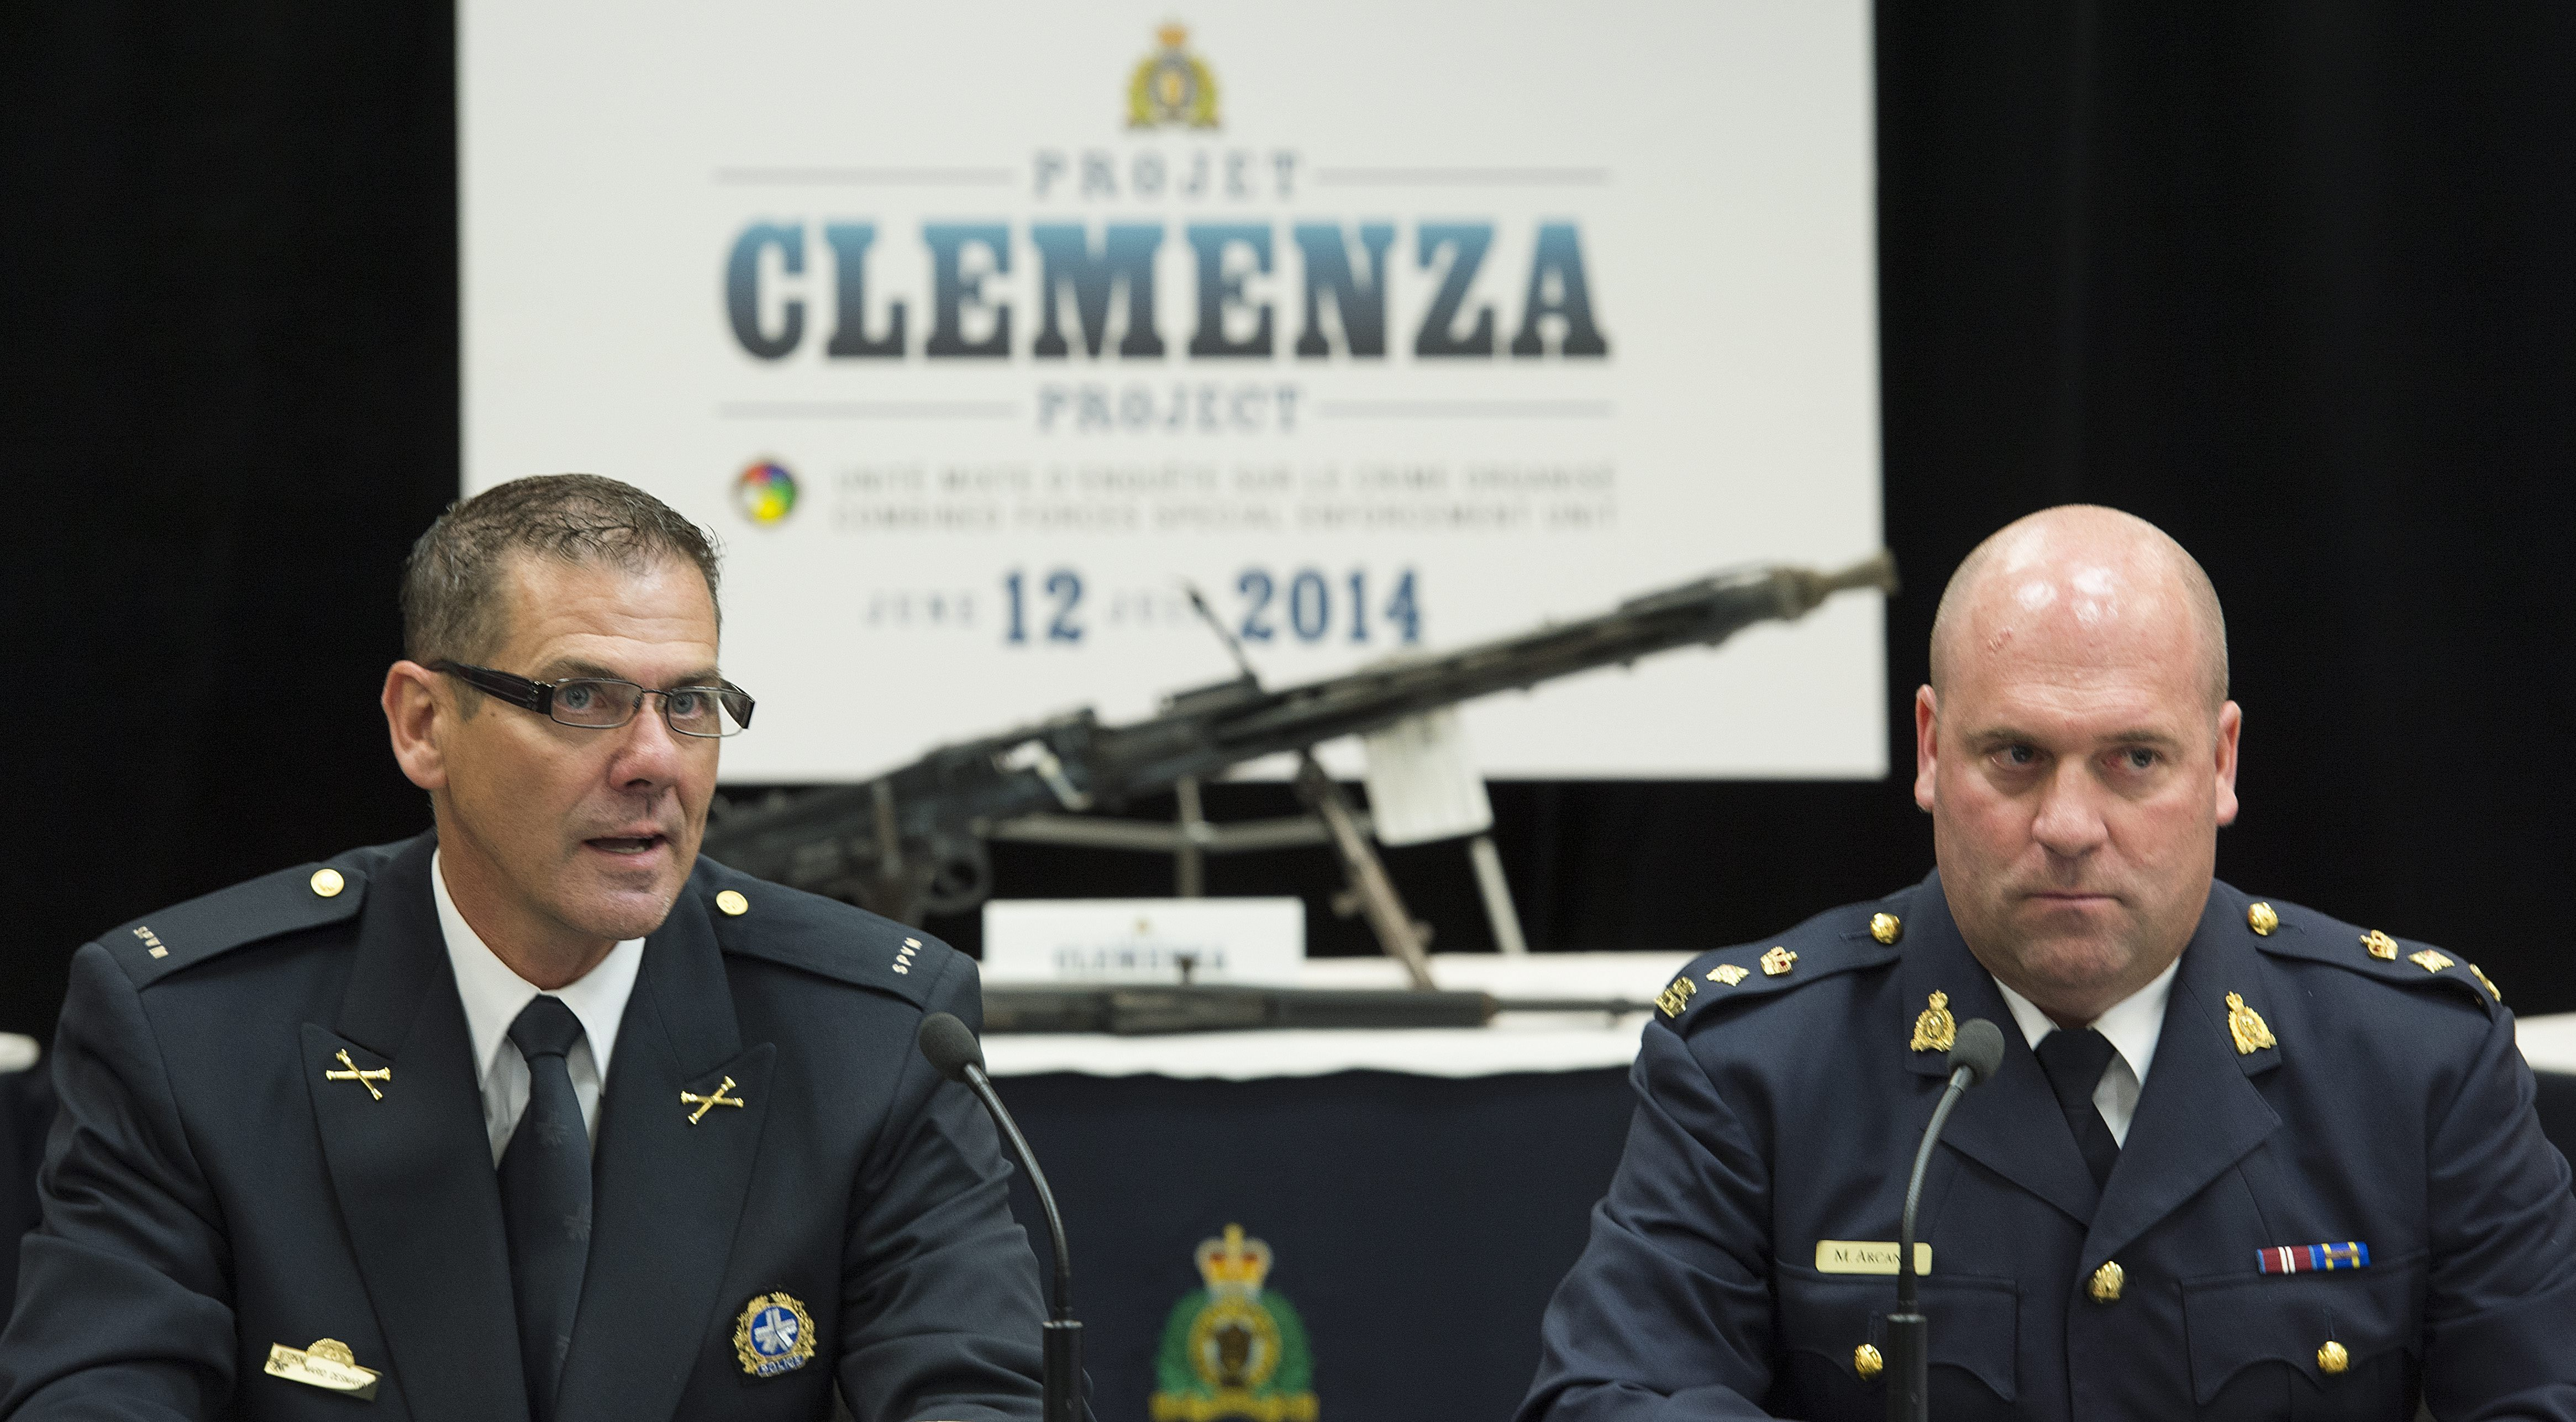 project clemenza